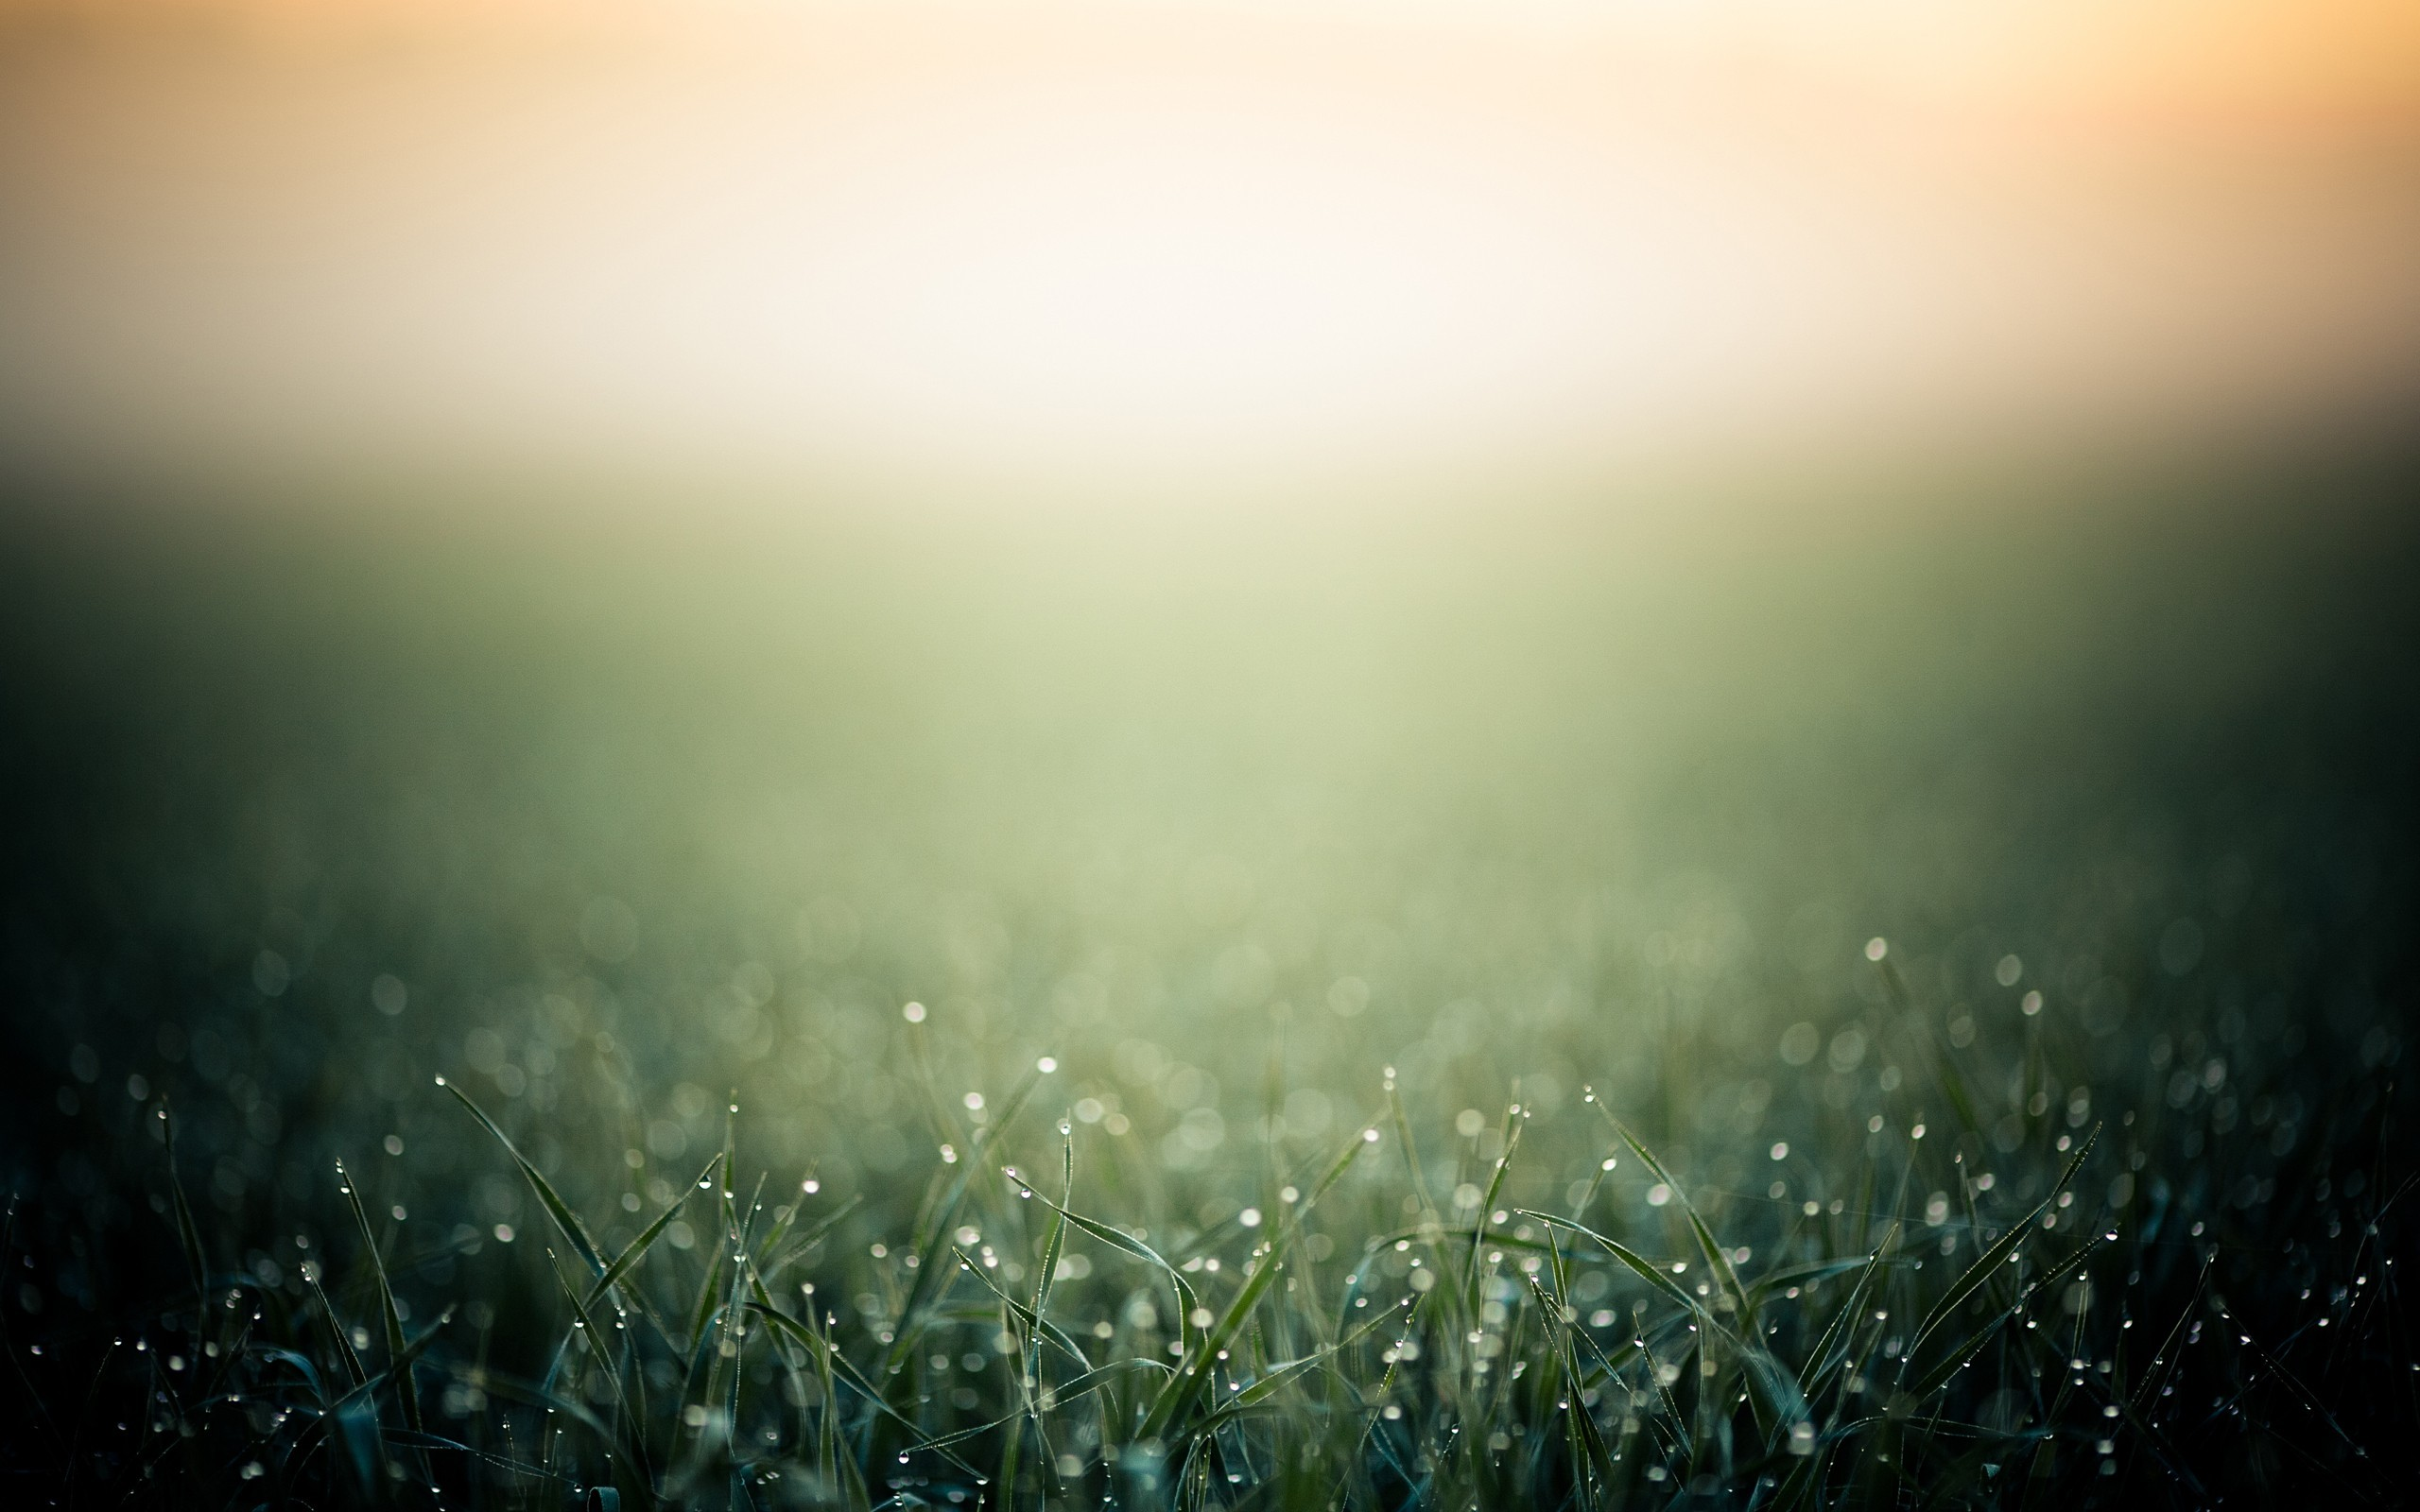 daily wallpaper: morning grass | i like to waste my time